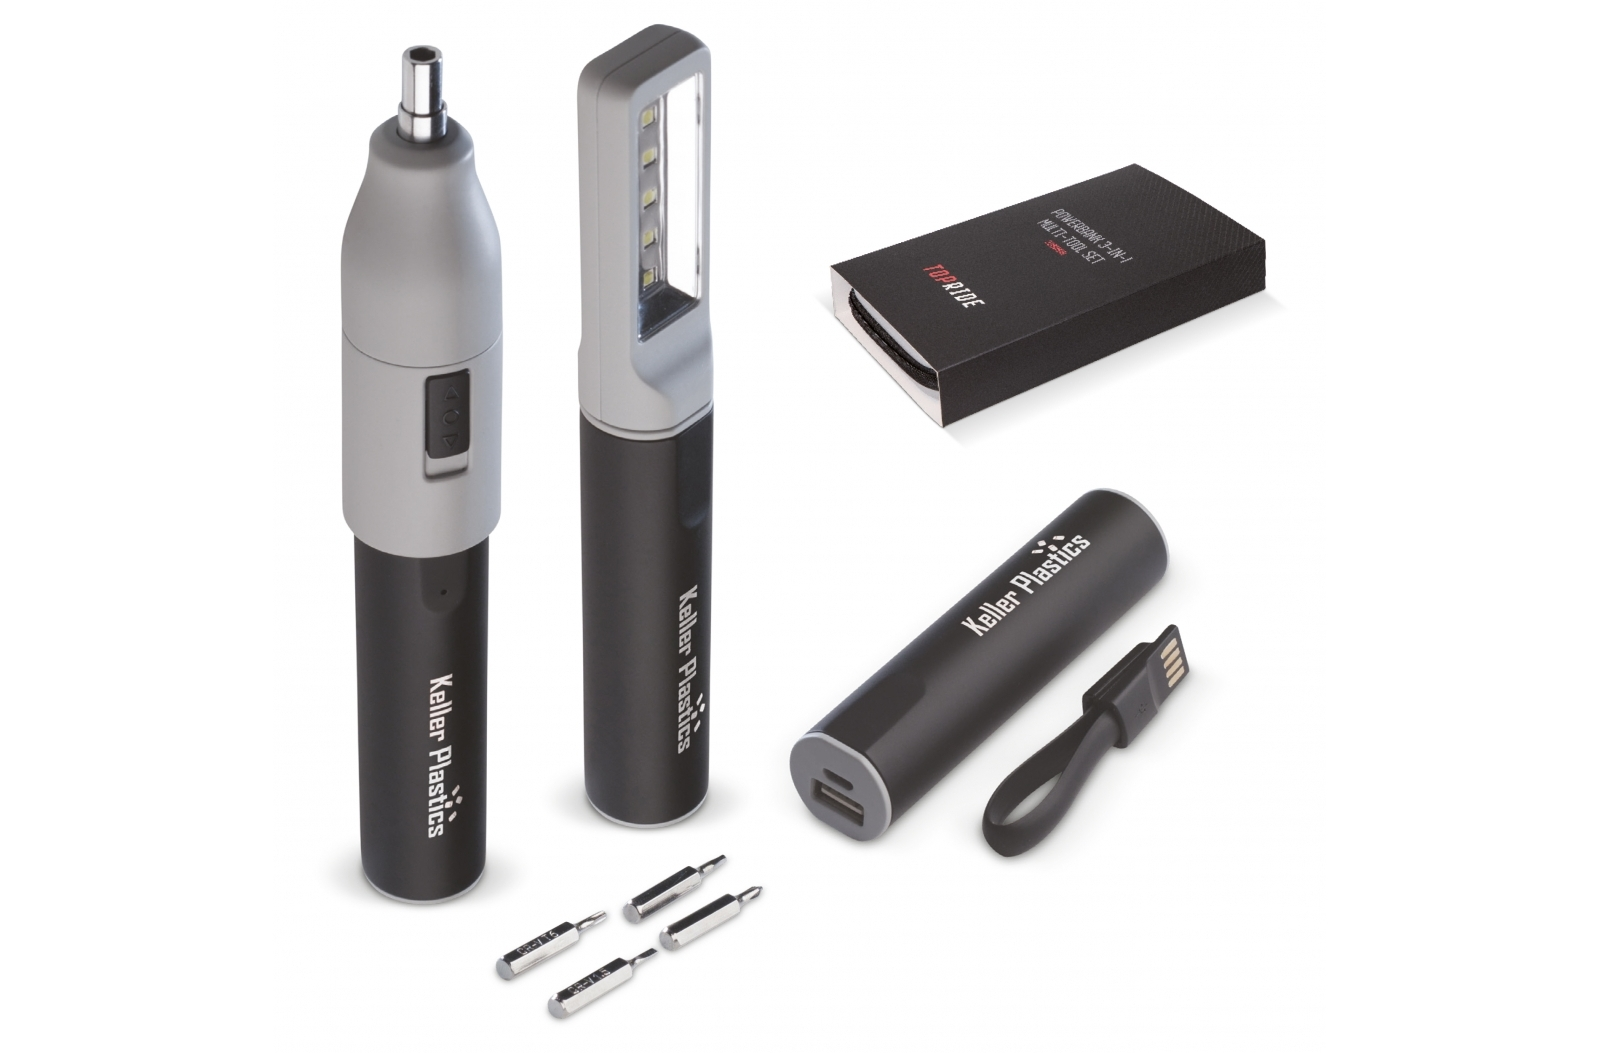 Powerbank 3-in-1 tool 2200mAh